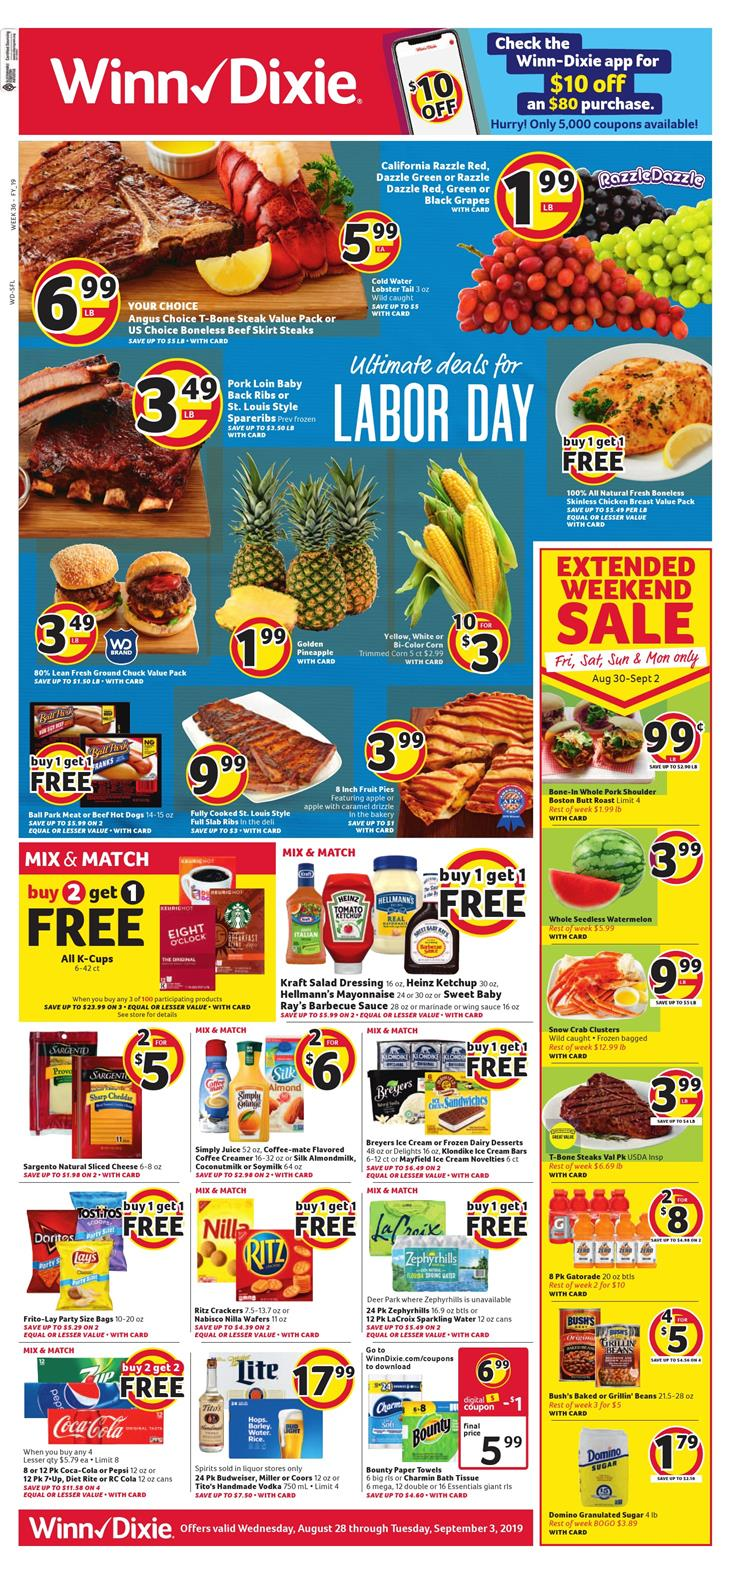 winn dixie weekly ad aug 28 2019